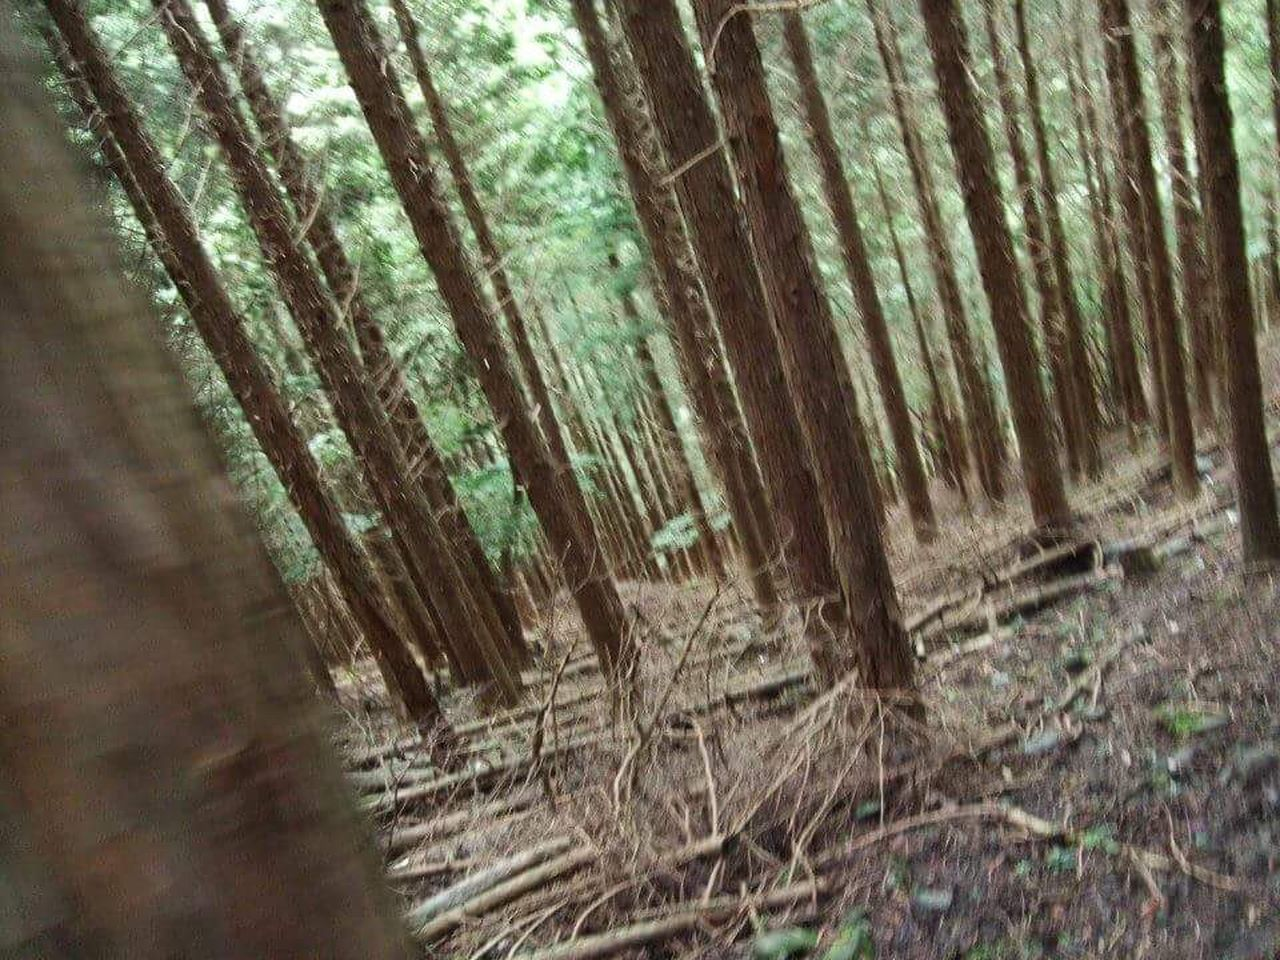 nature, forest, no people, day, tree trunk, outdoors, tree, close-up